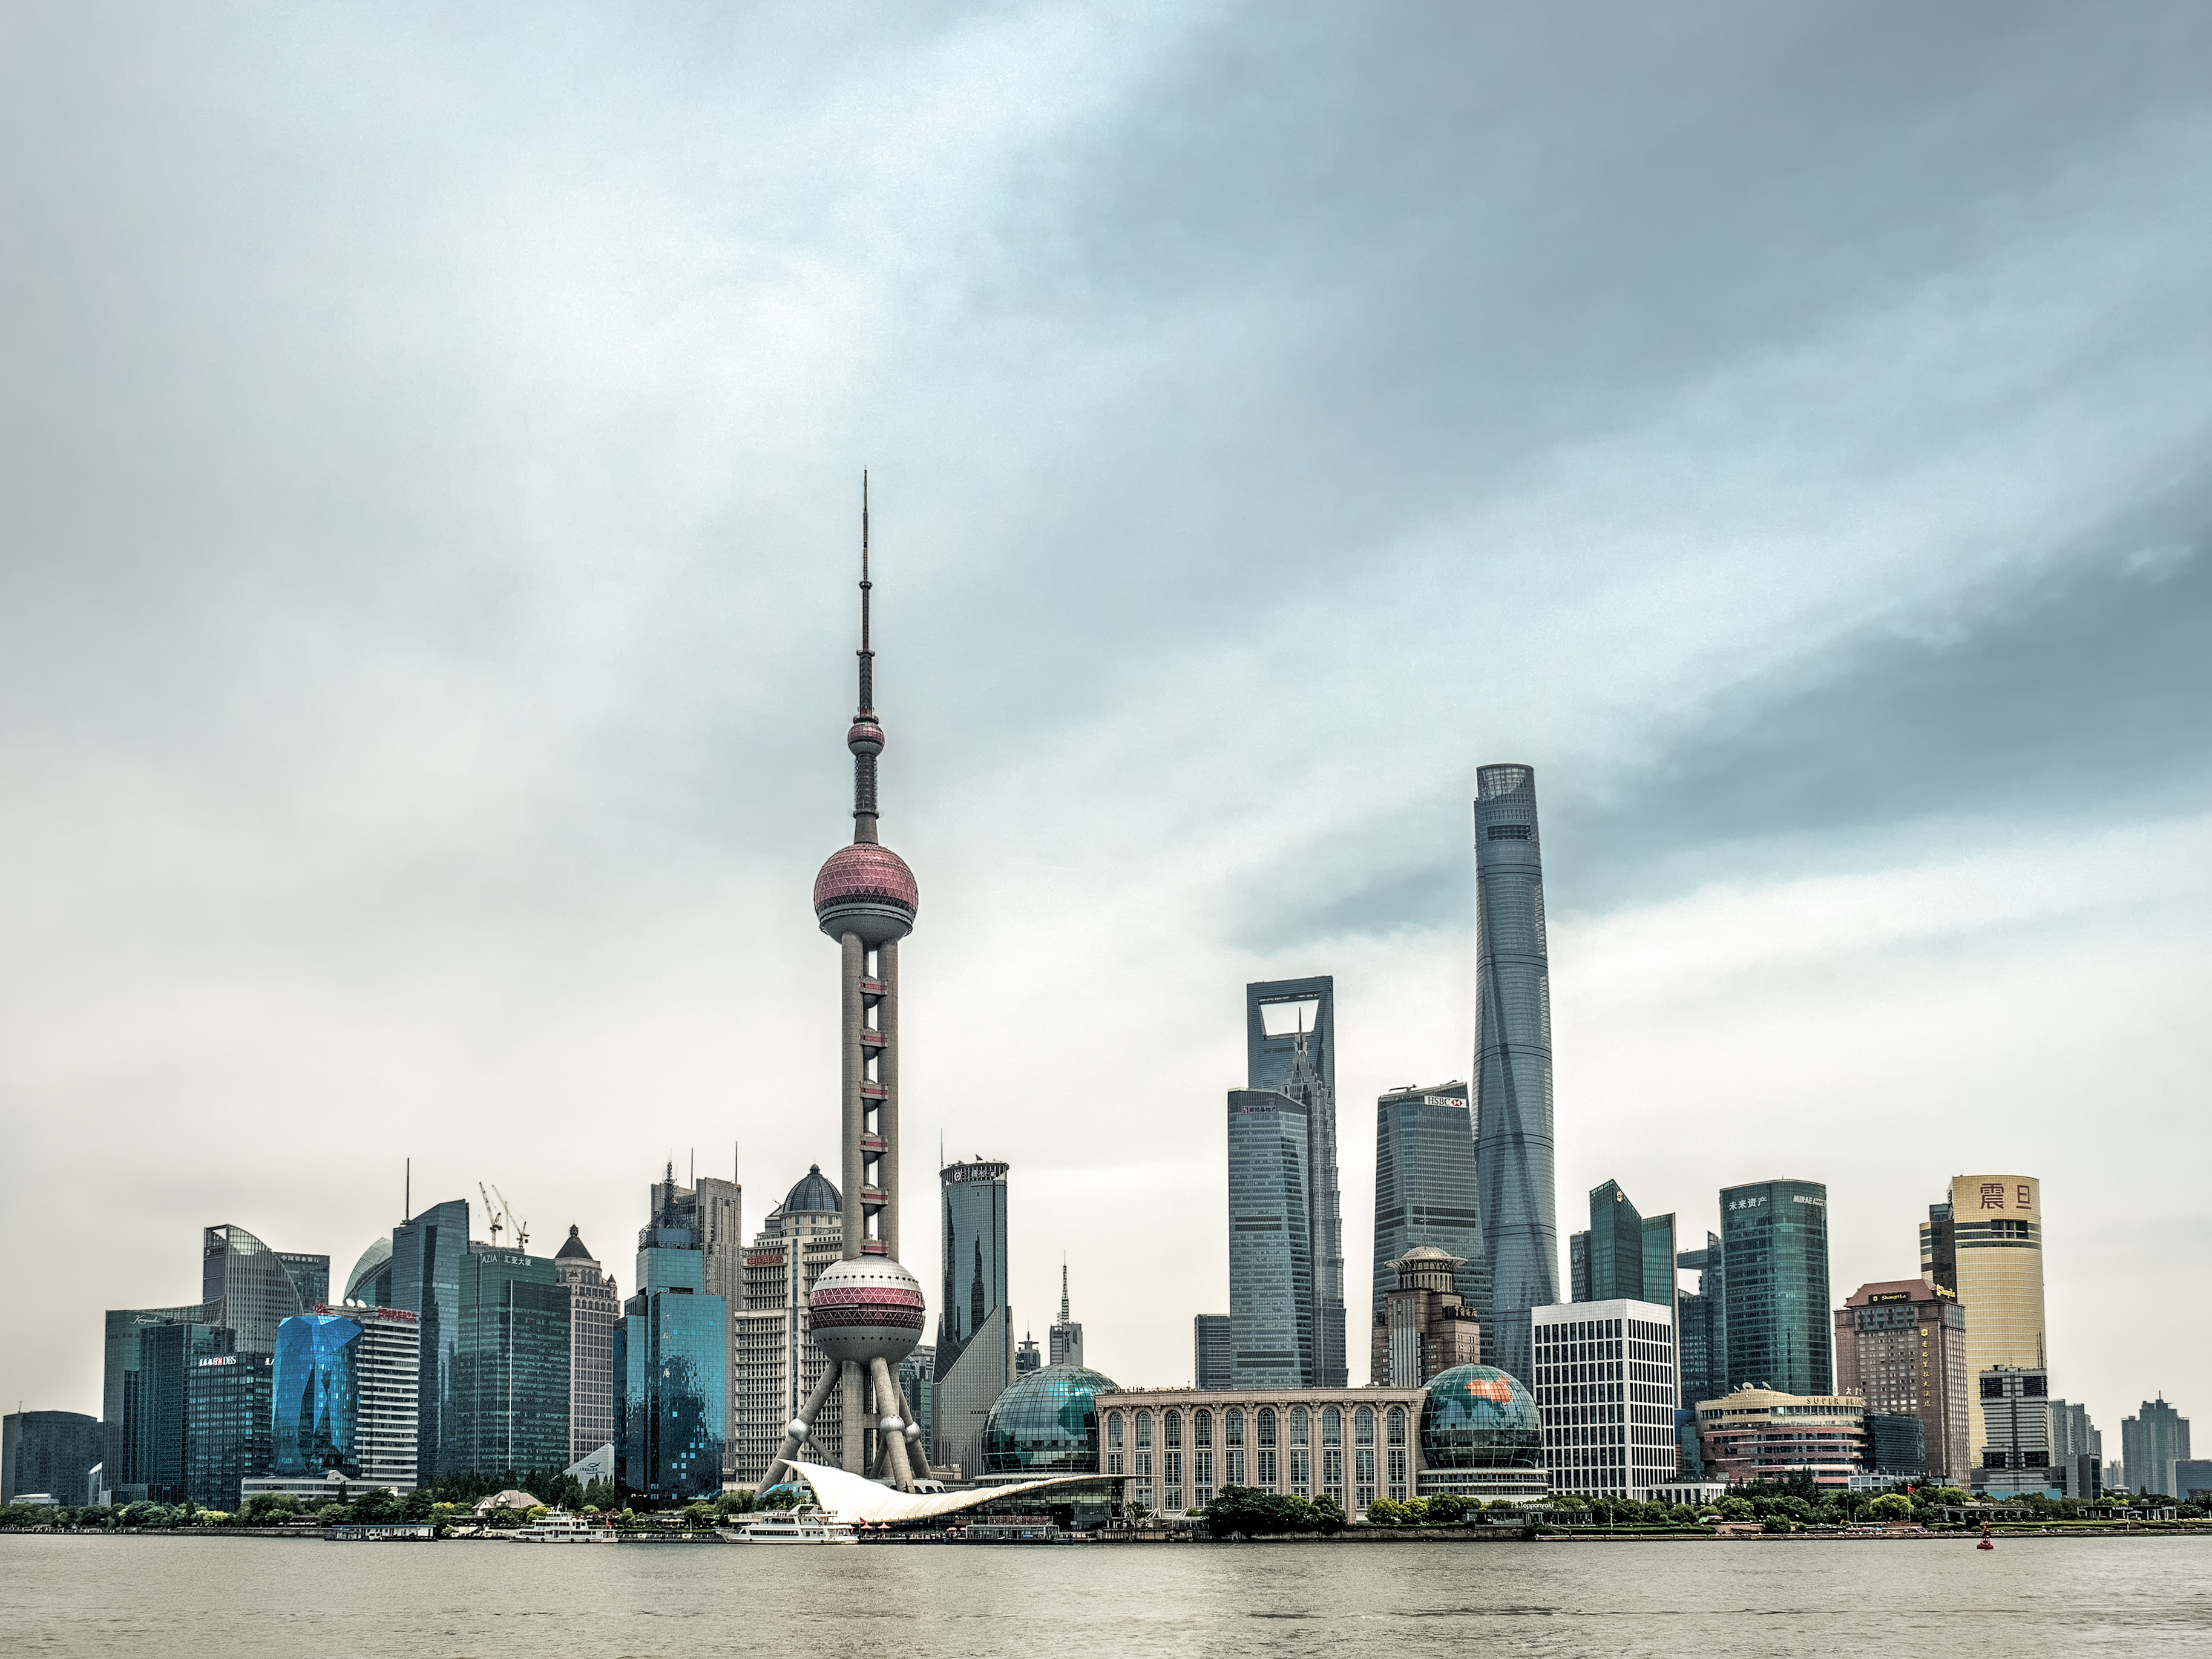 Shanghai skyline waterfront pudong 5166168 69 70